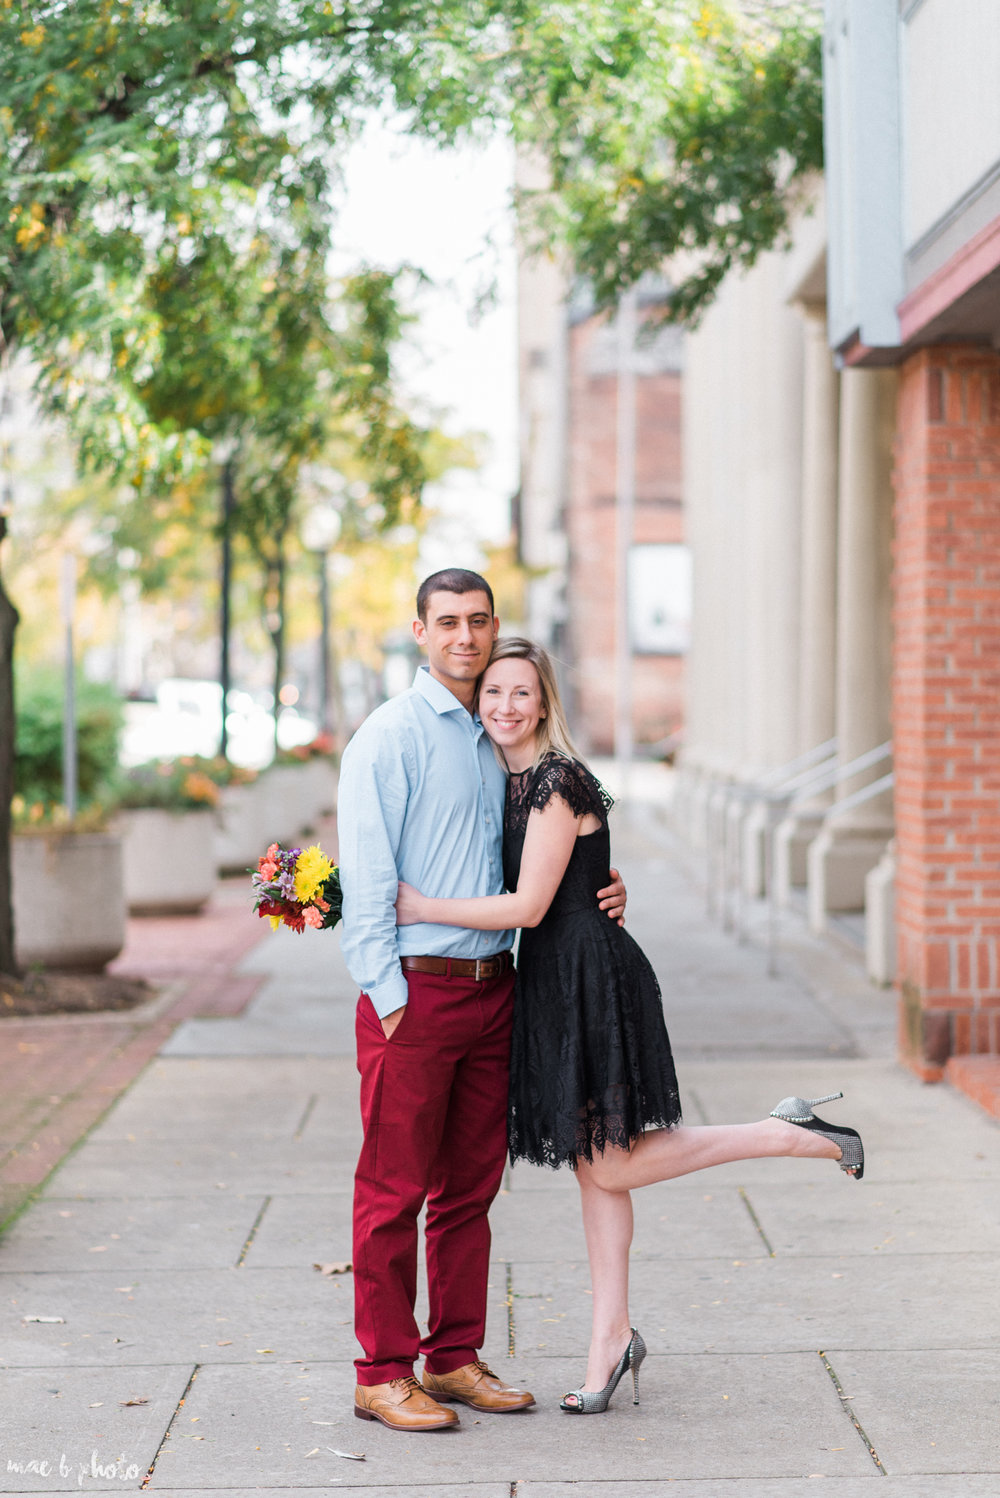 Emily & Michael's Lifestyle Engagement Session in Youngstown Ohio by Mae B Photo-52.jpg